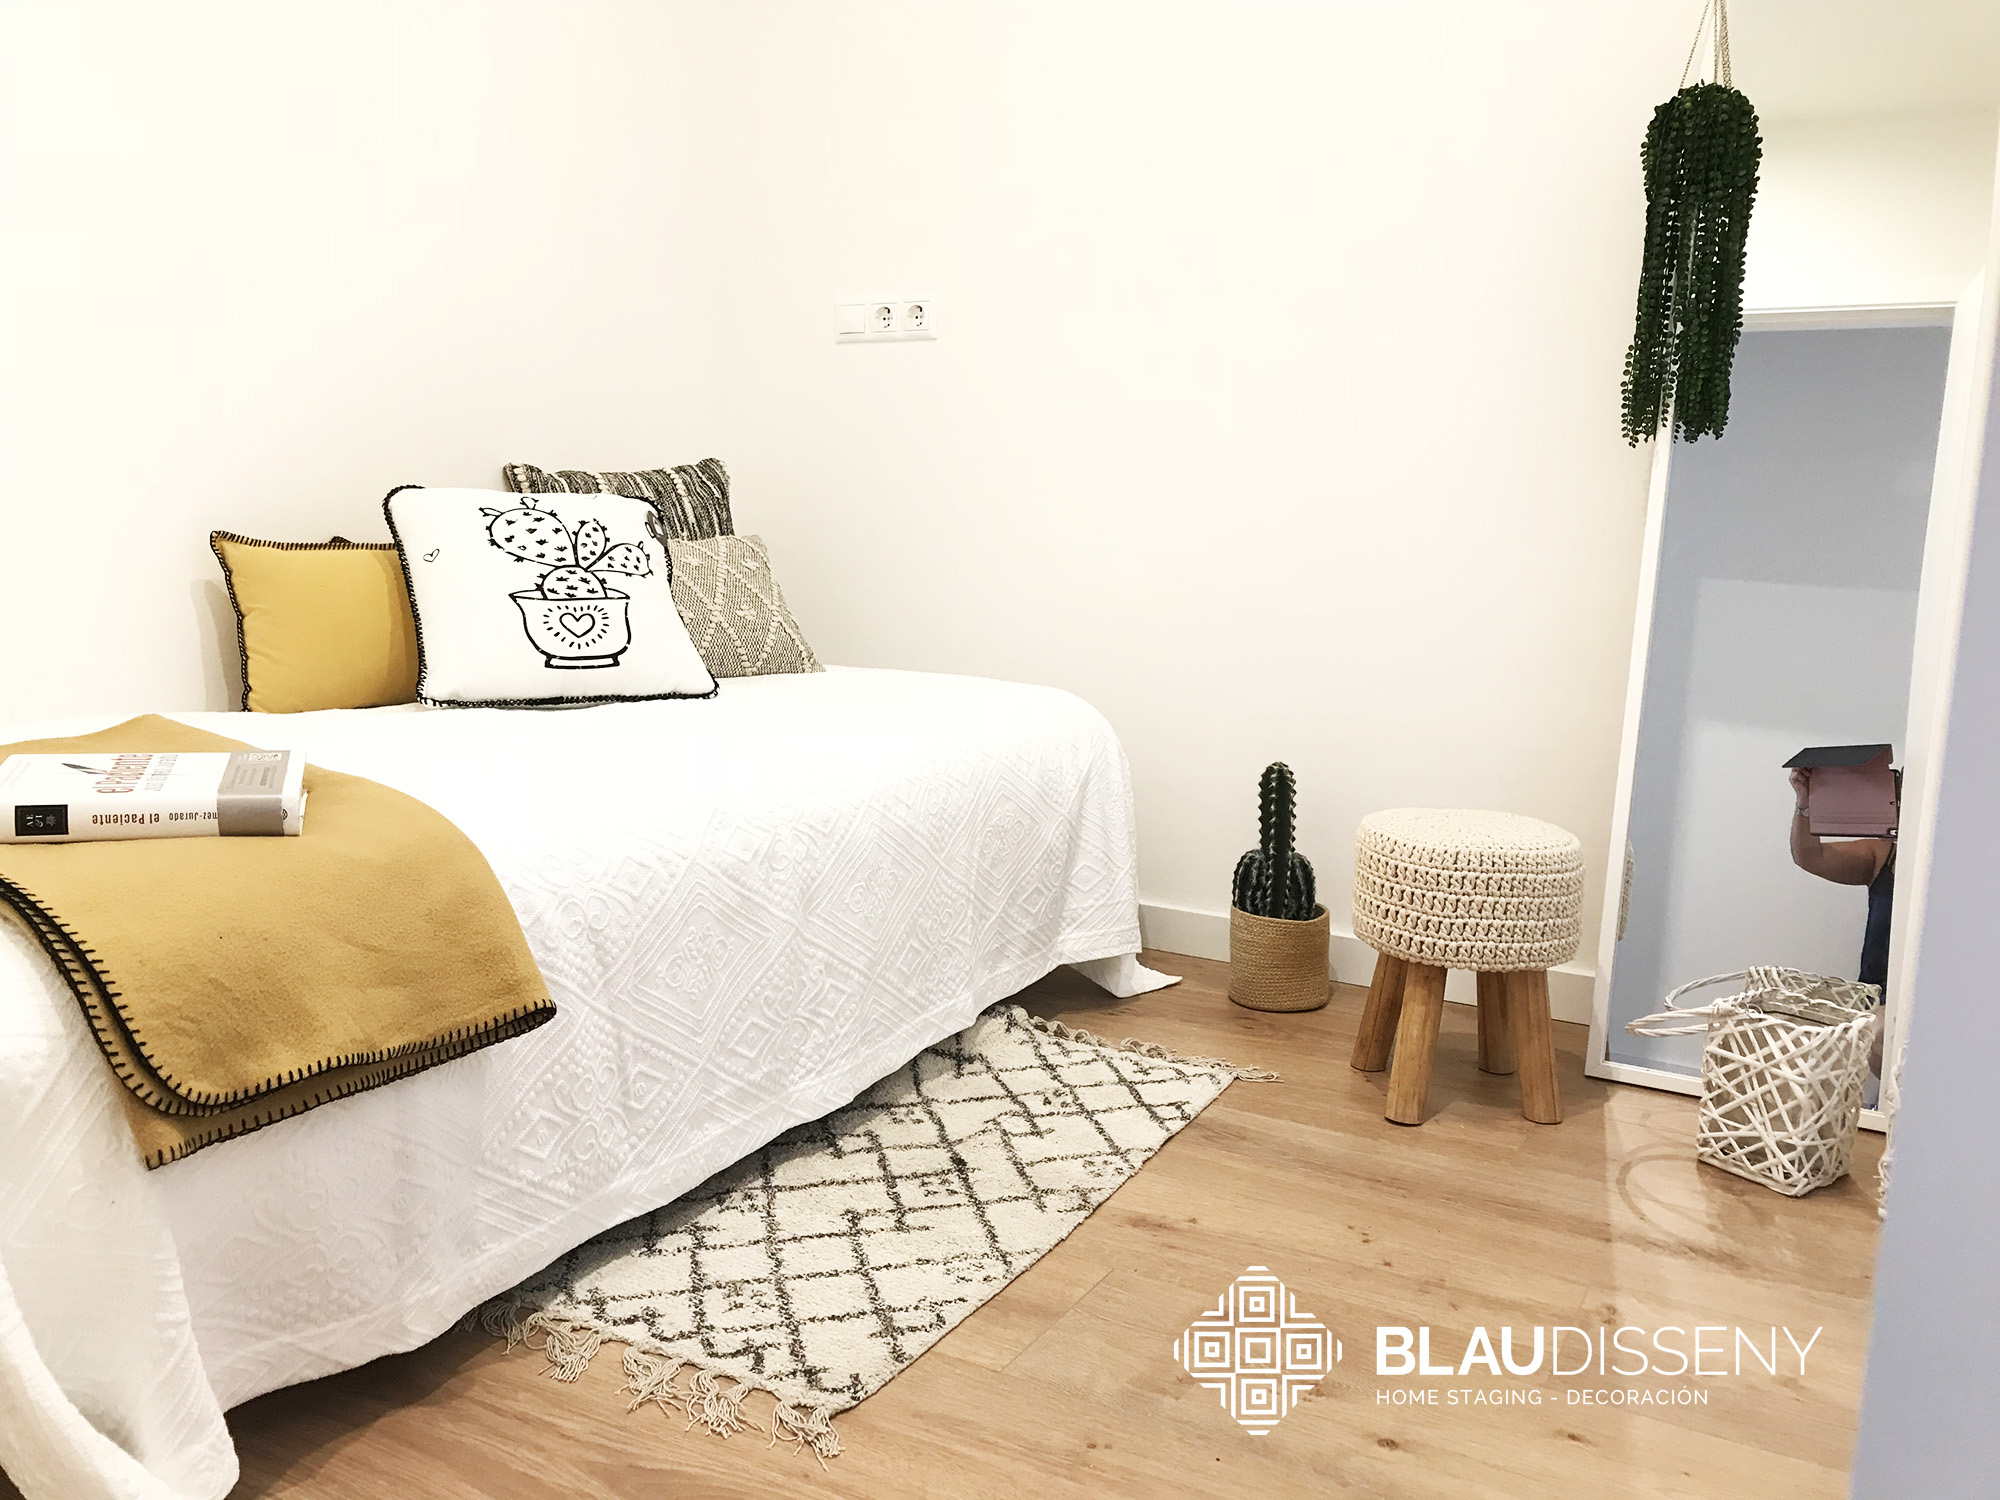 Blaudisseny-home-staging-santa-catalina-habitacion-individual-1-despues-logo